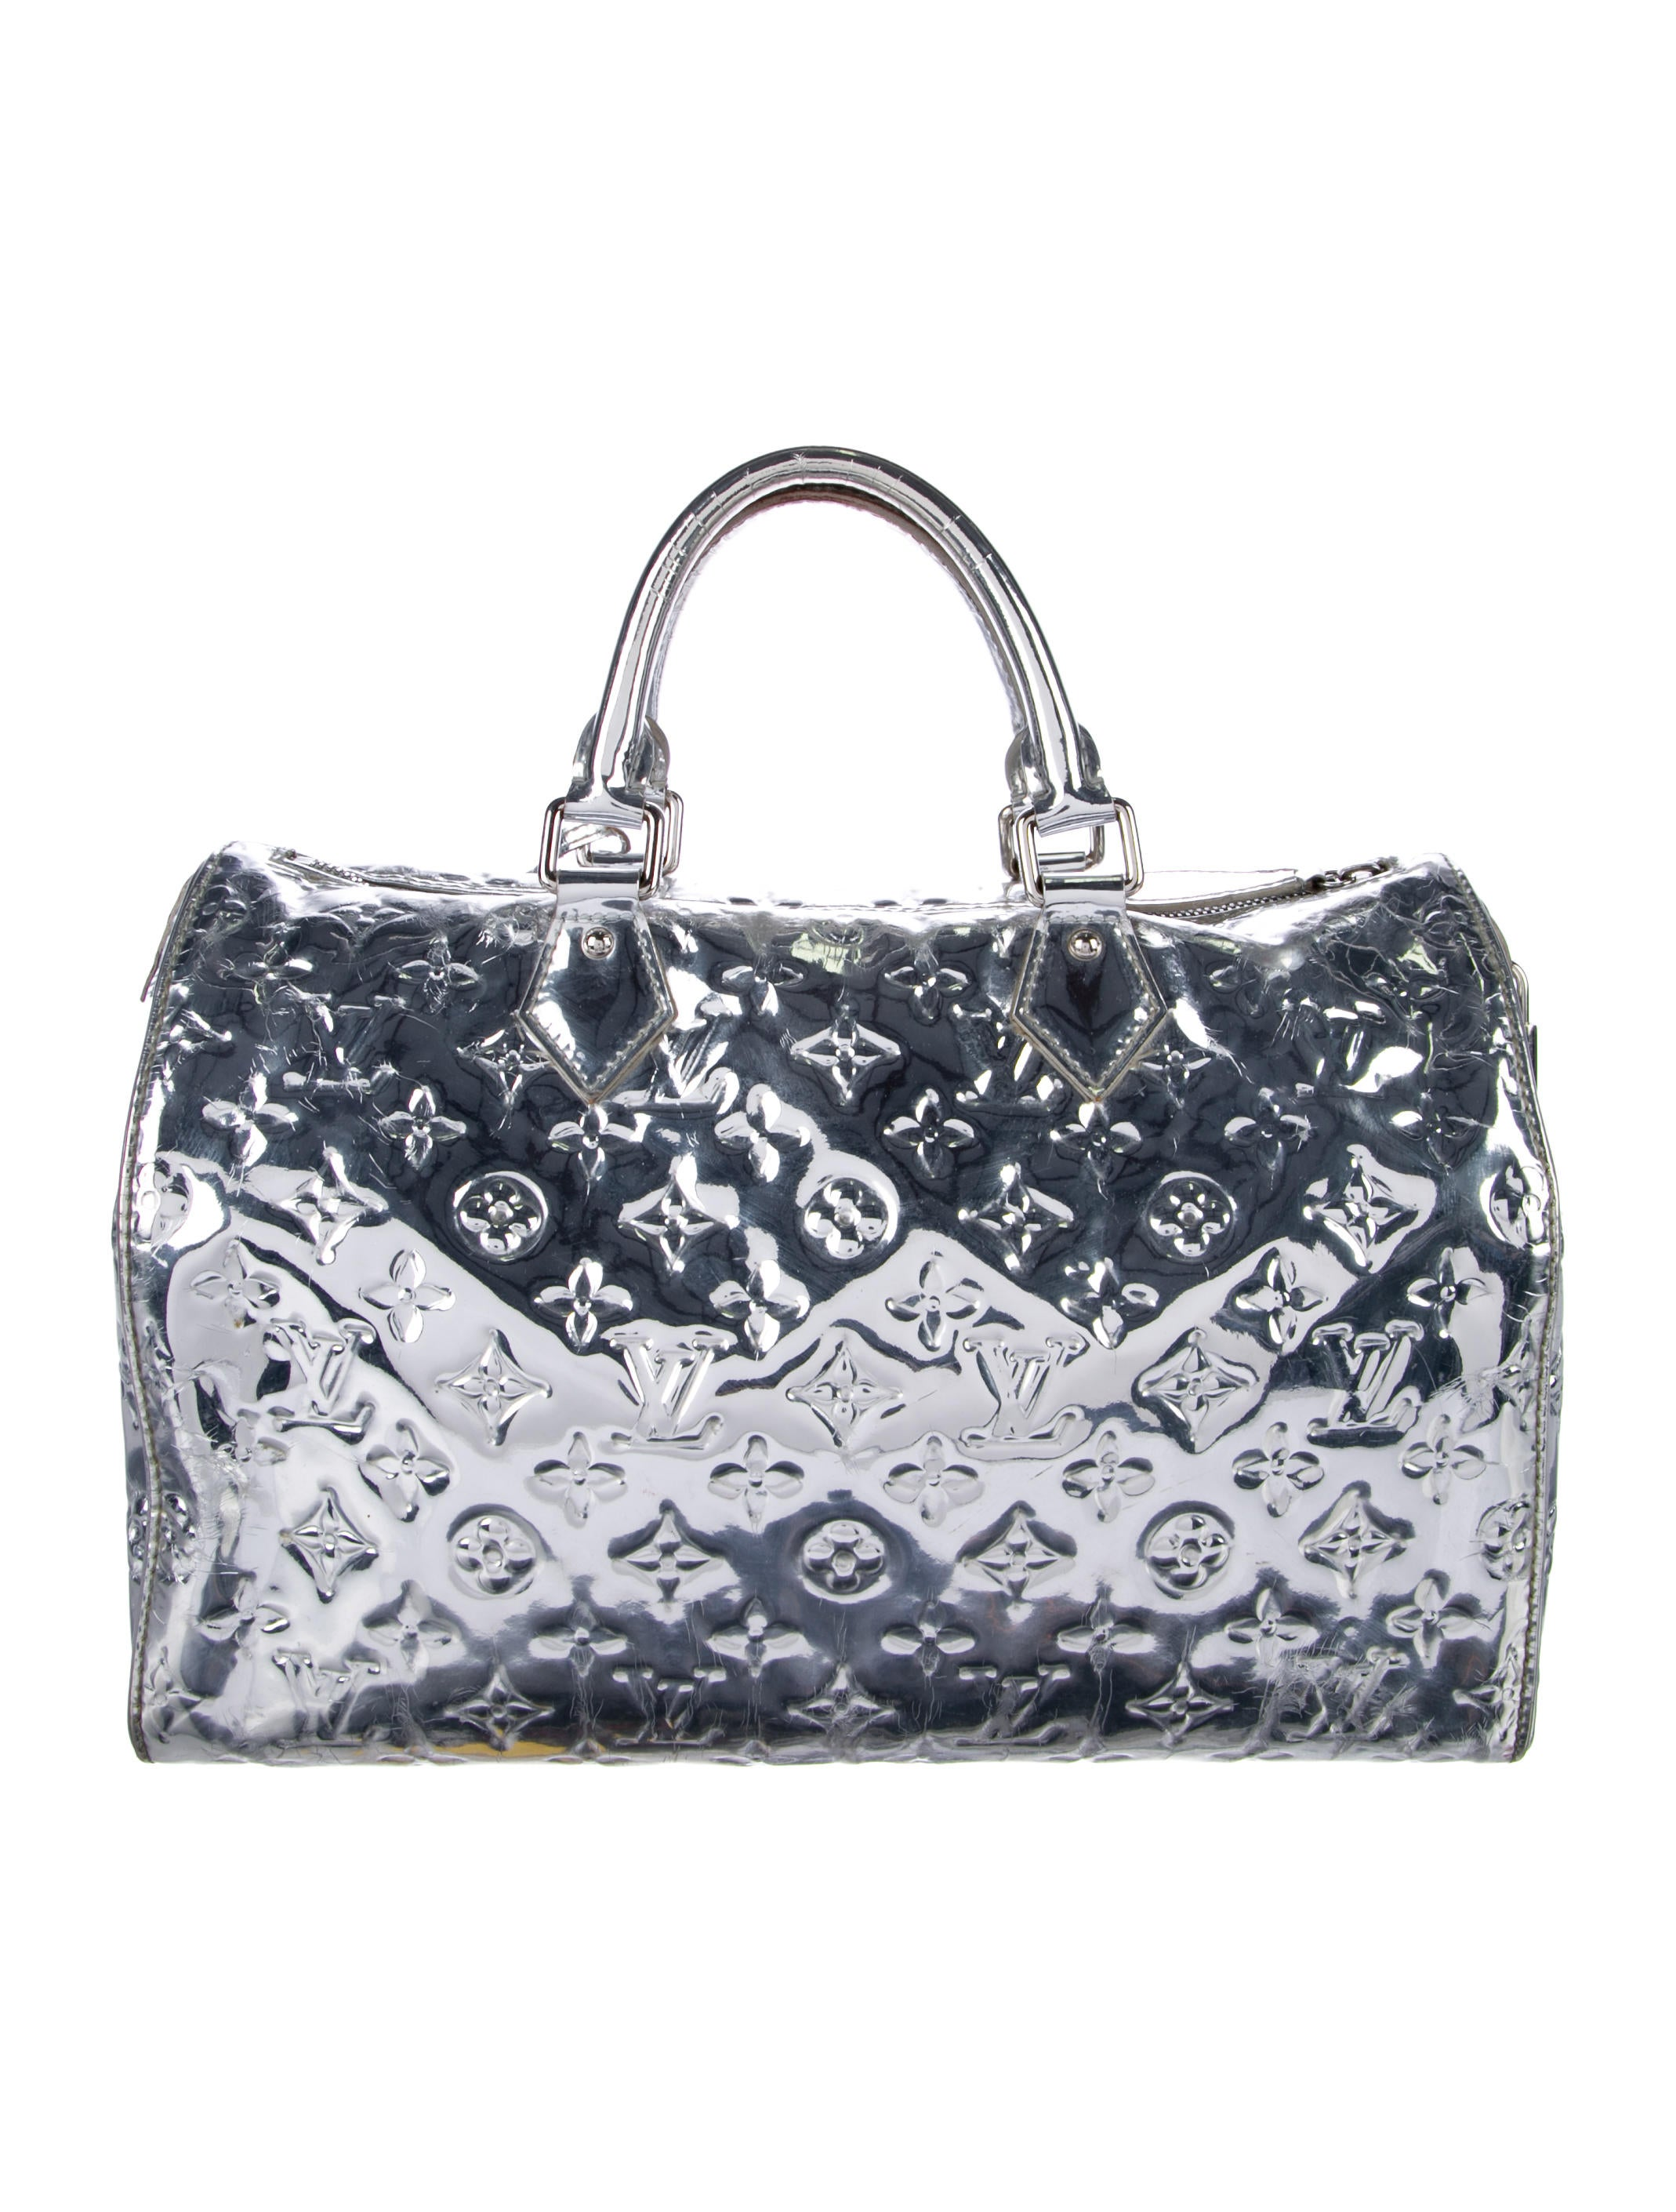 louis vuitton monogram miroir speedy 30 handbags